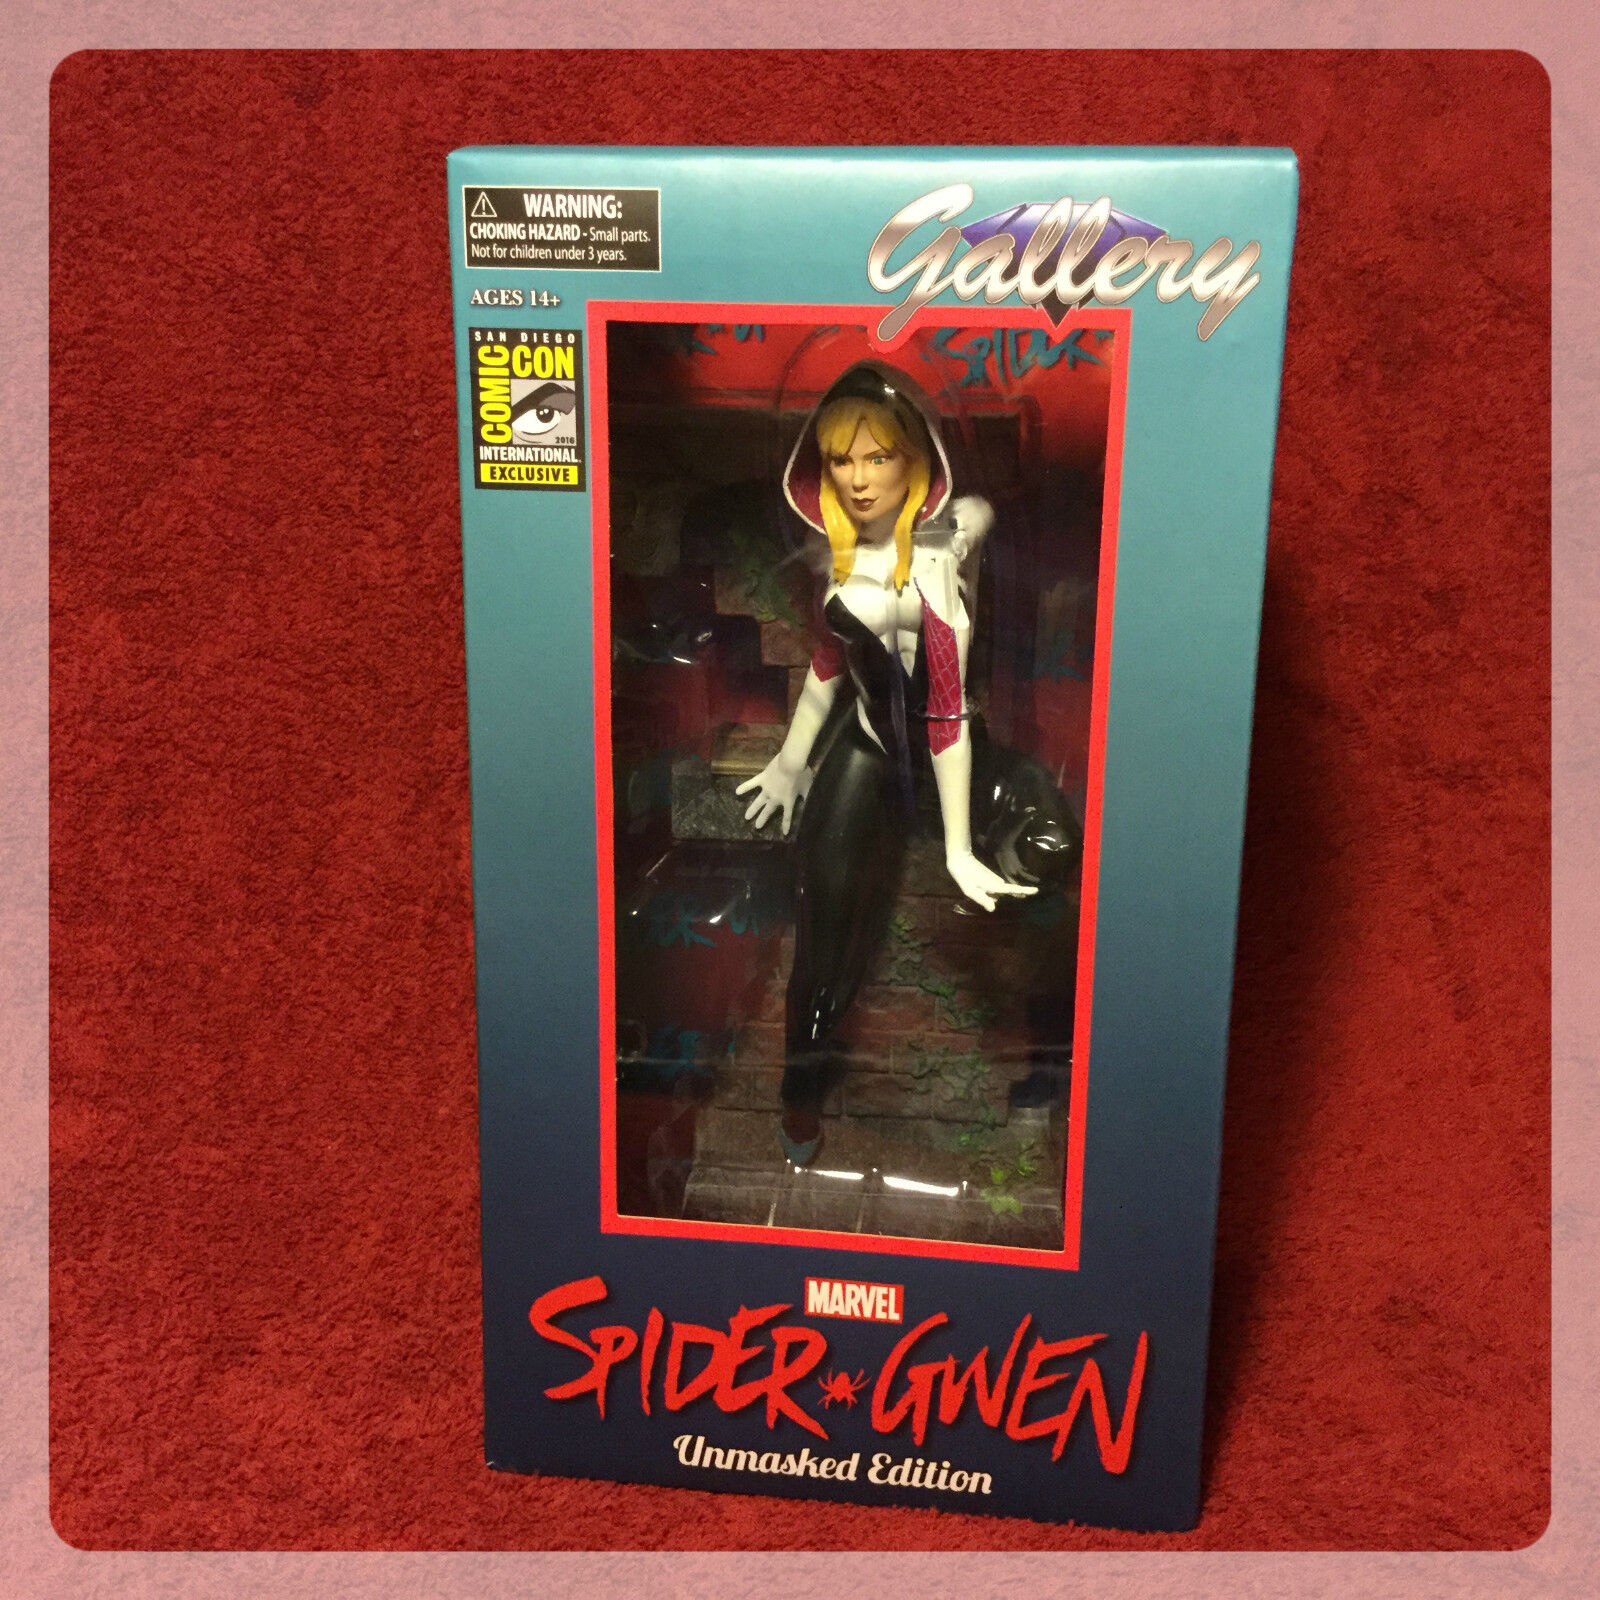 SDCC COMIC CON 2016 EXCLUSIVE MARVEL GALLERY SPIDER-GWEN UNMASKED FIGURE